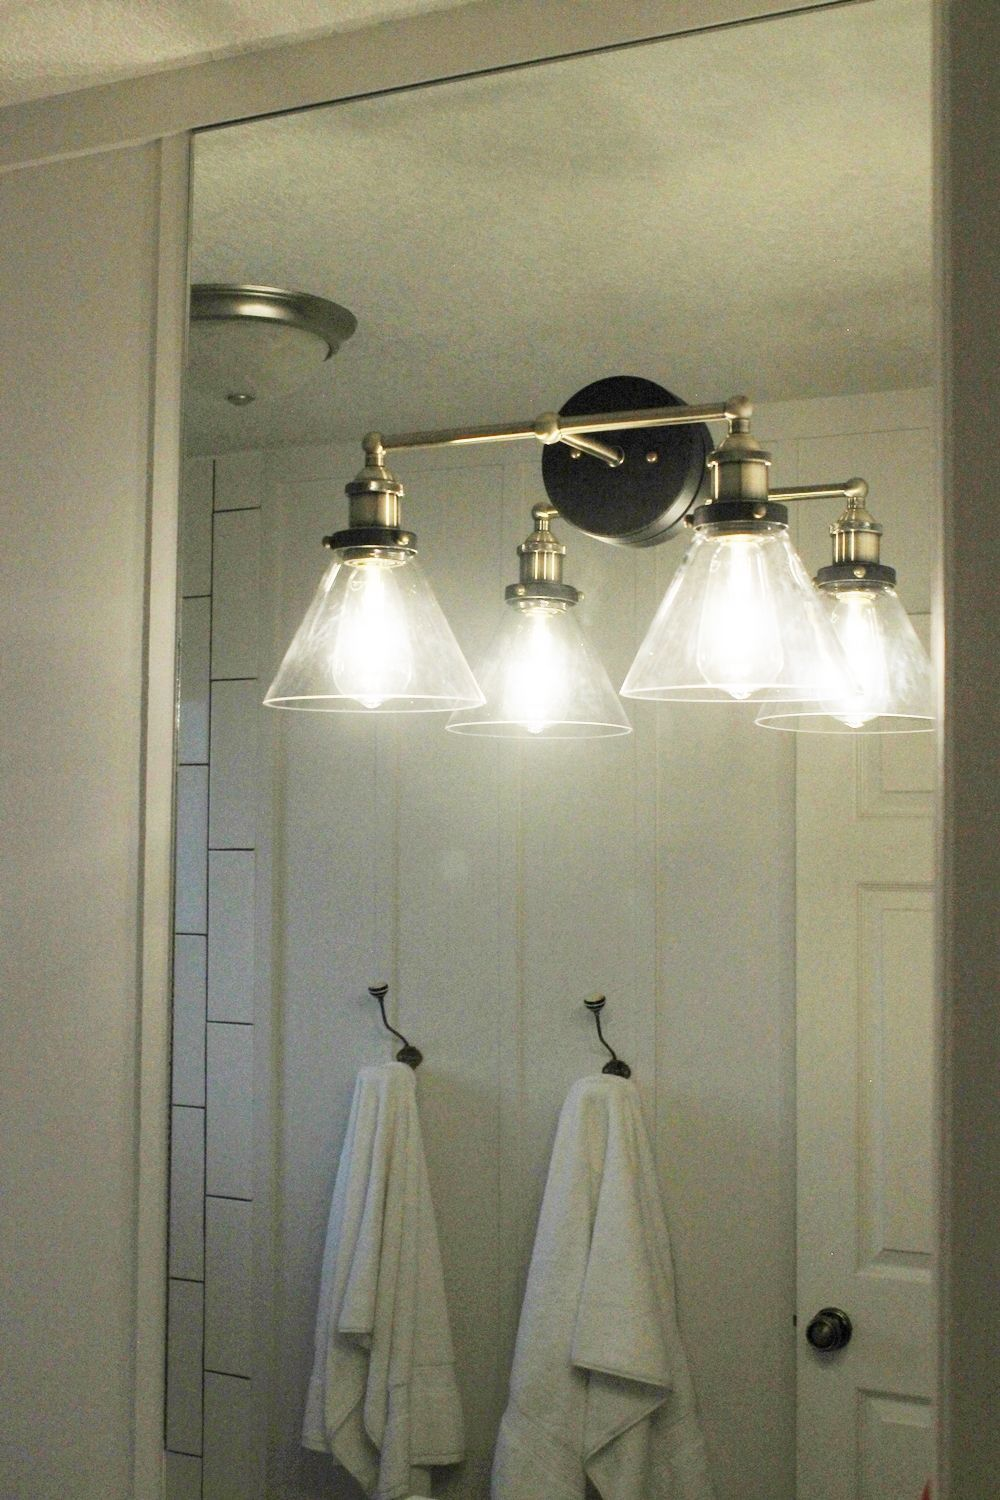 Admirable How To Mount A Light On Top Of A Mirror Bathroom Vanity Interior Design Ideas Ghosoteloinfo